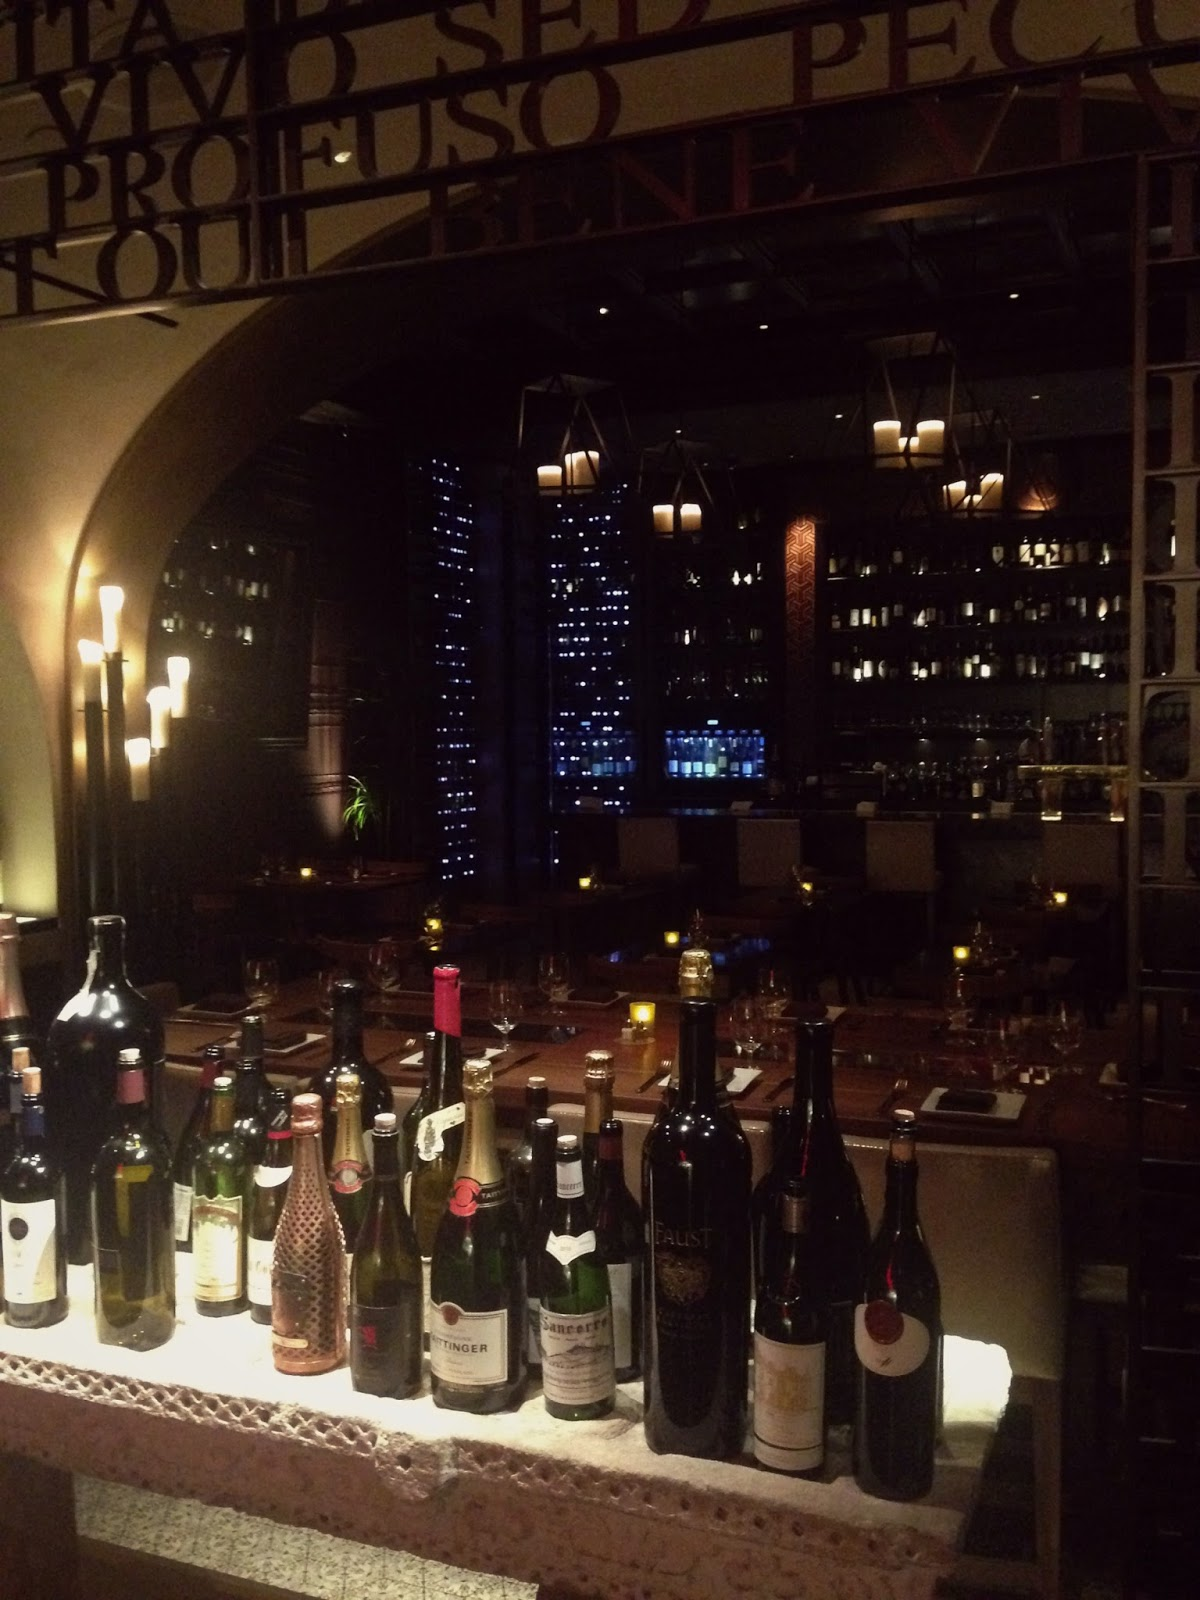 Wine Bar Bottles And Seats